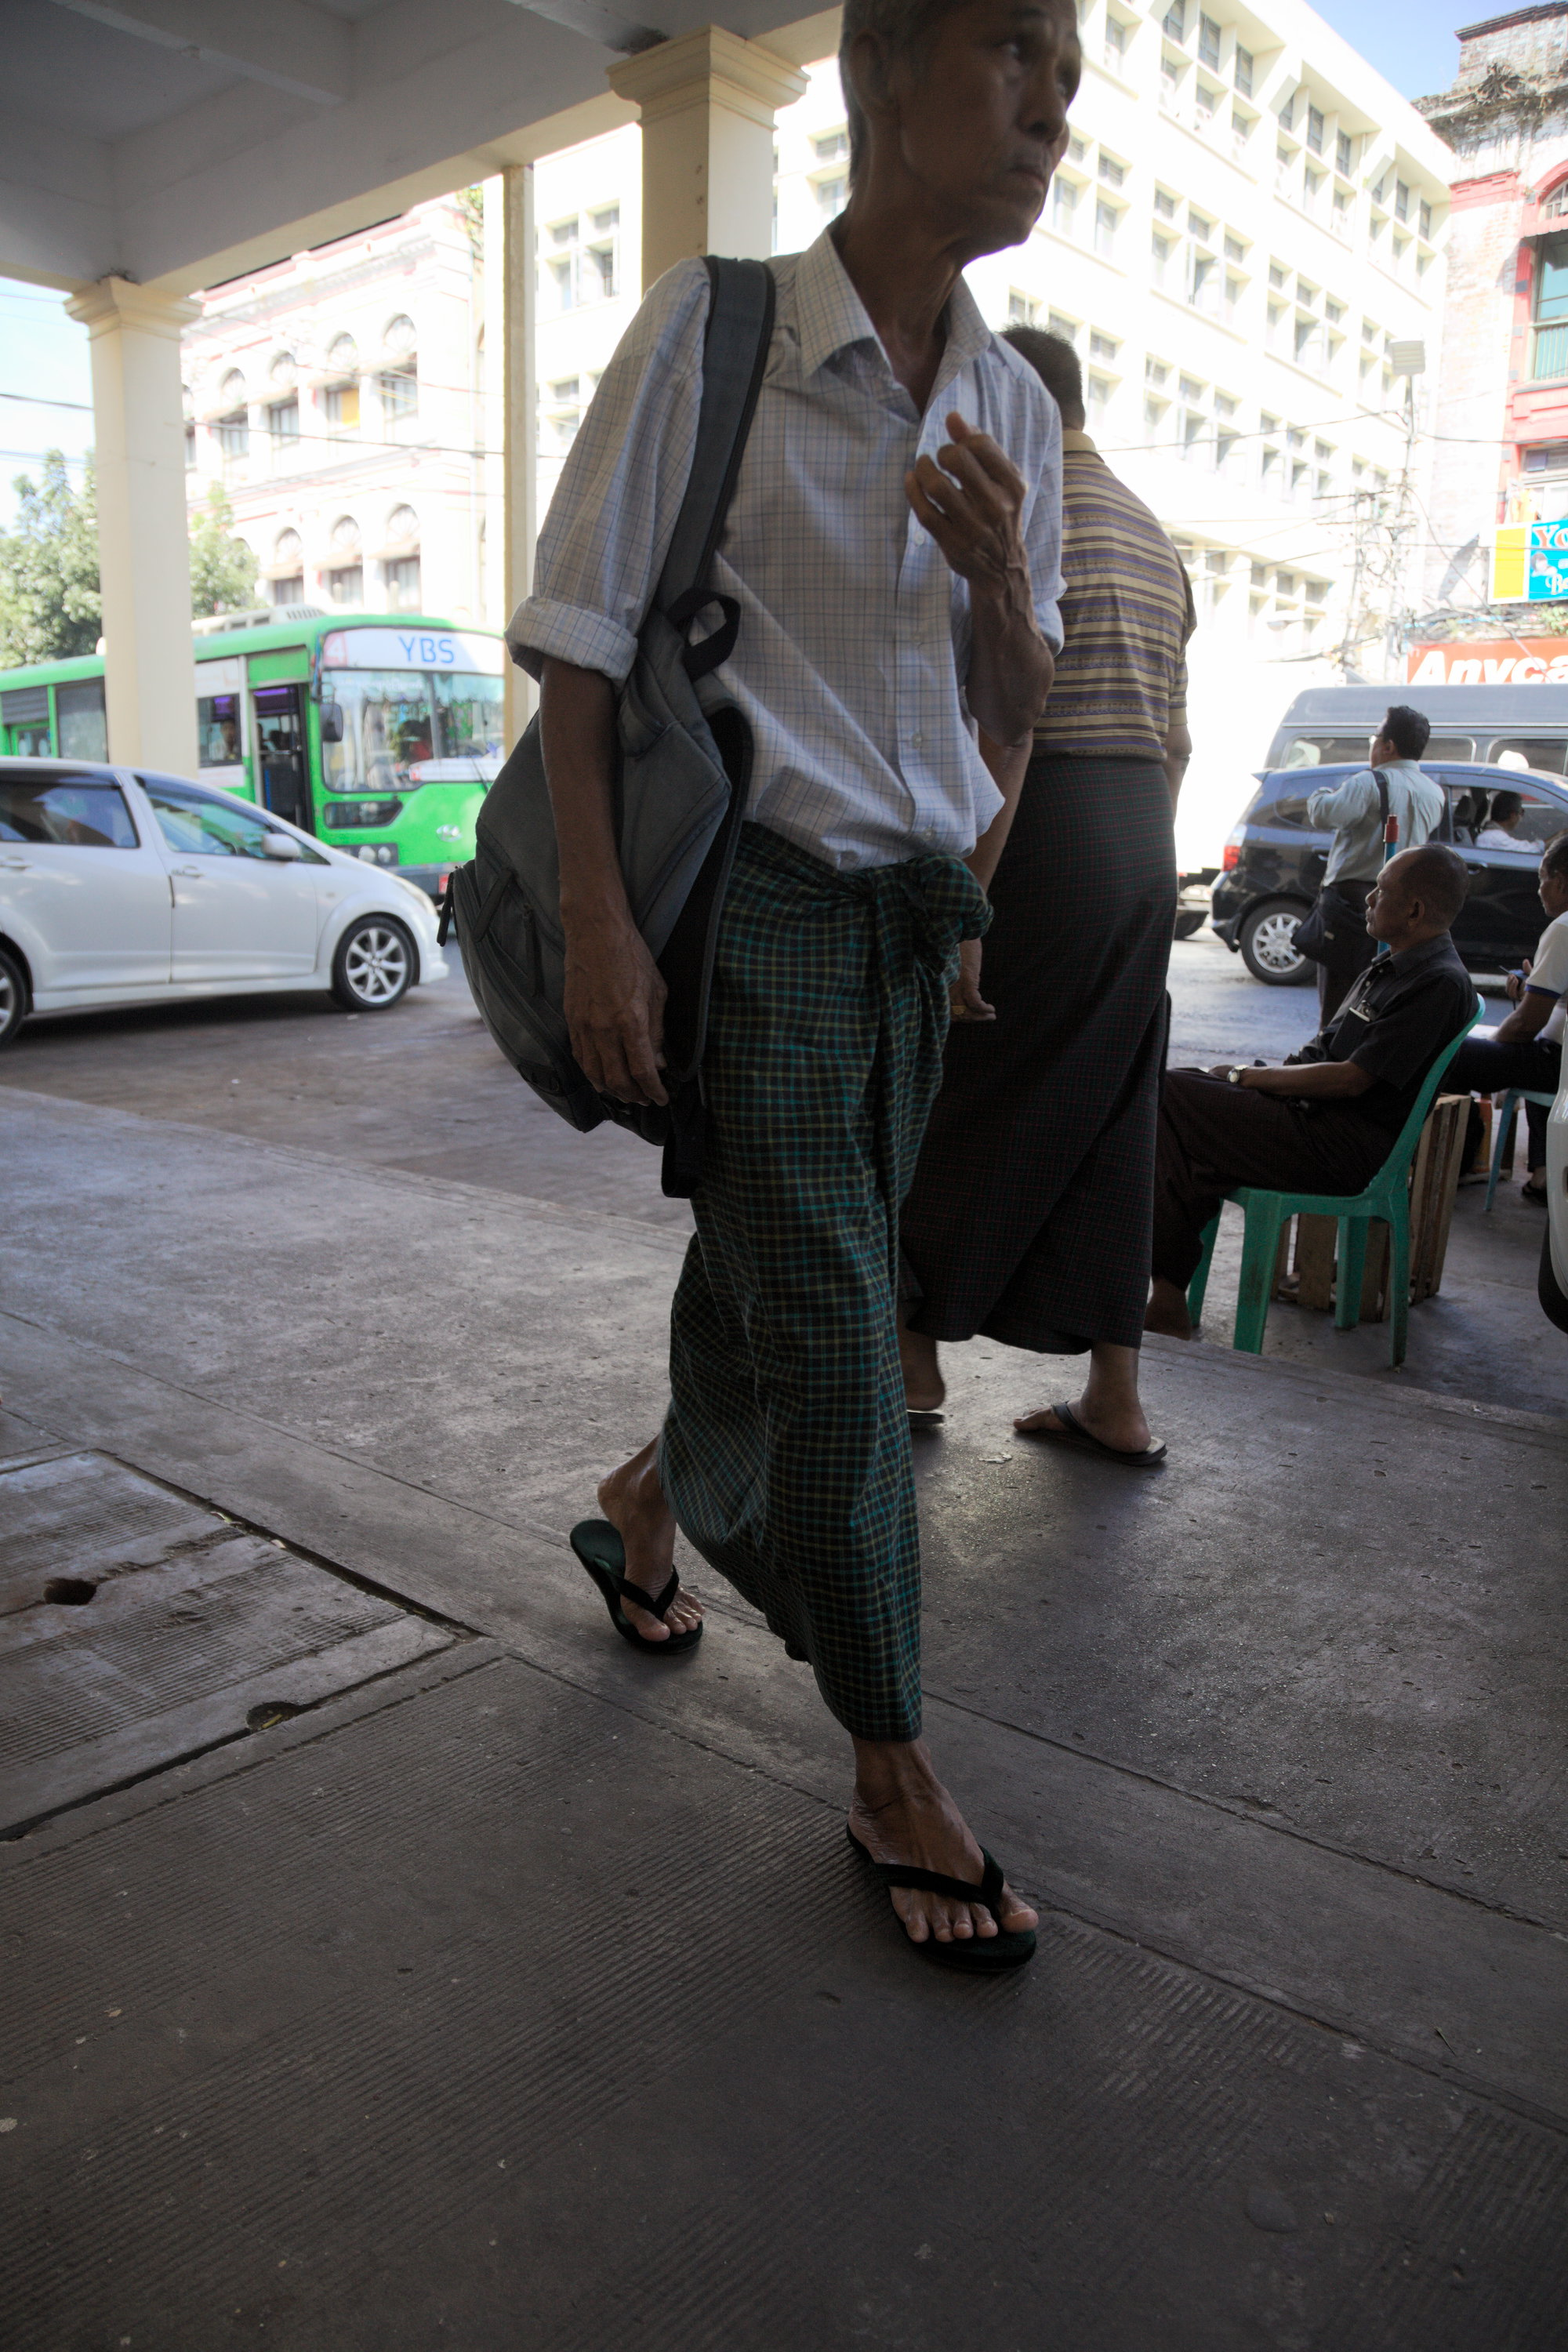 The commuter, Yangon